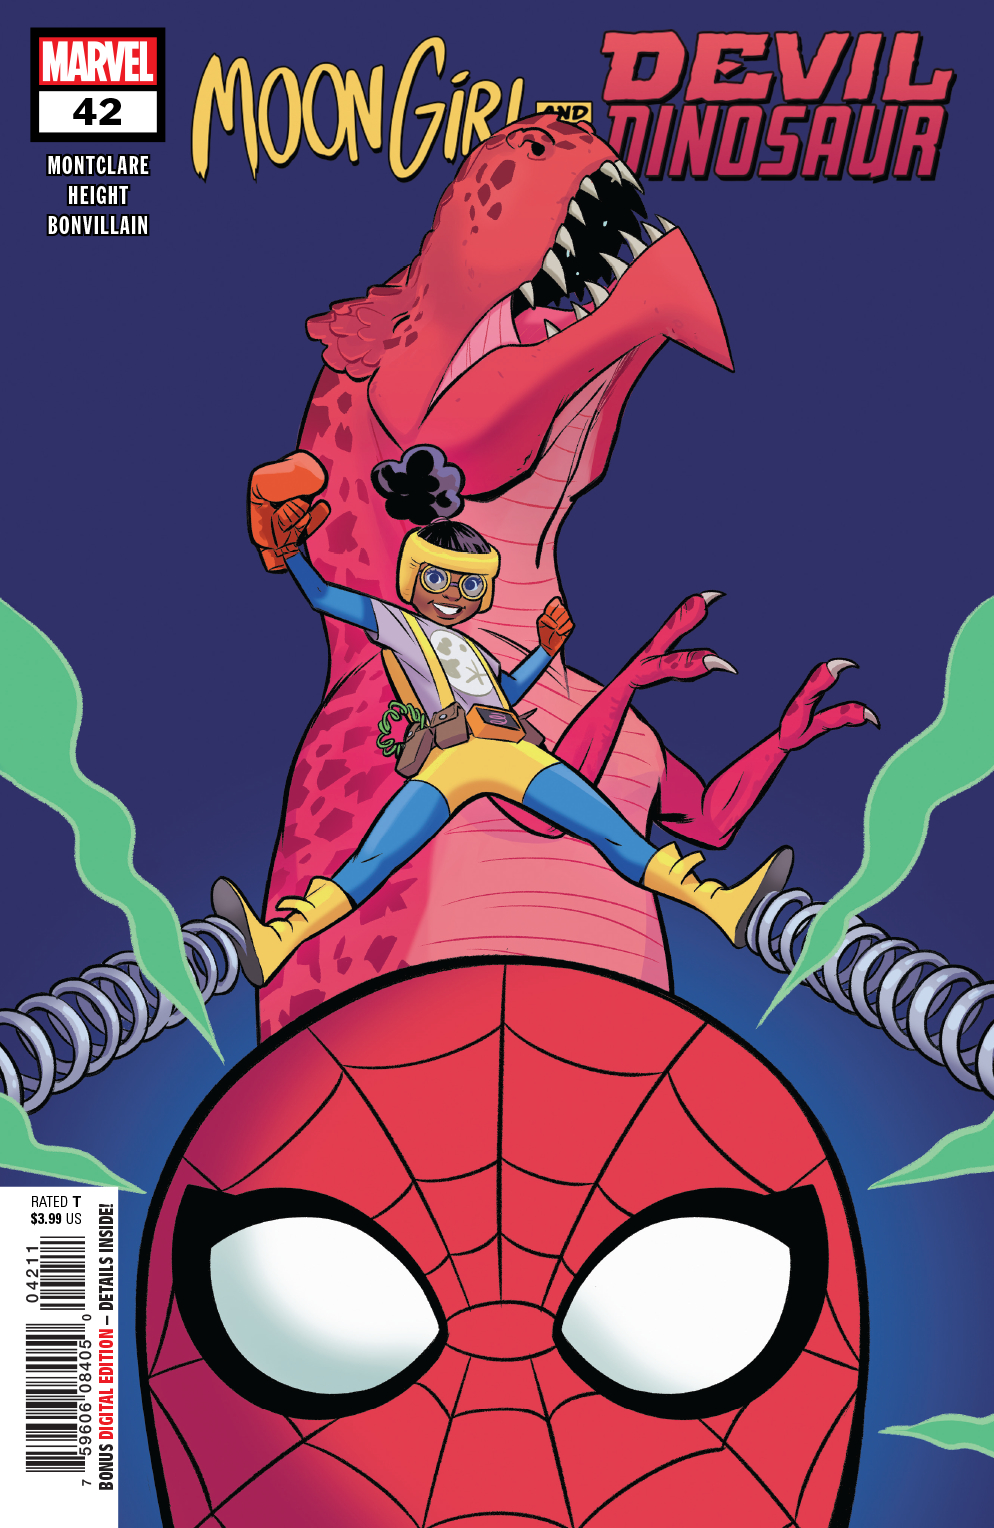 MOON GIRL AND DEVIL DINOSAUR #42